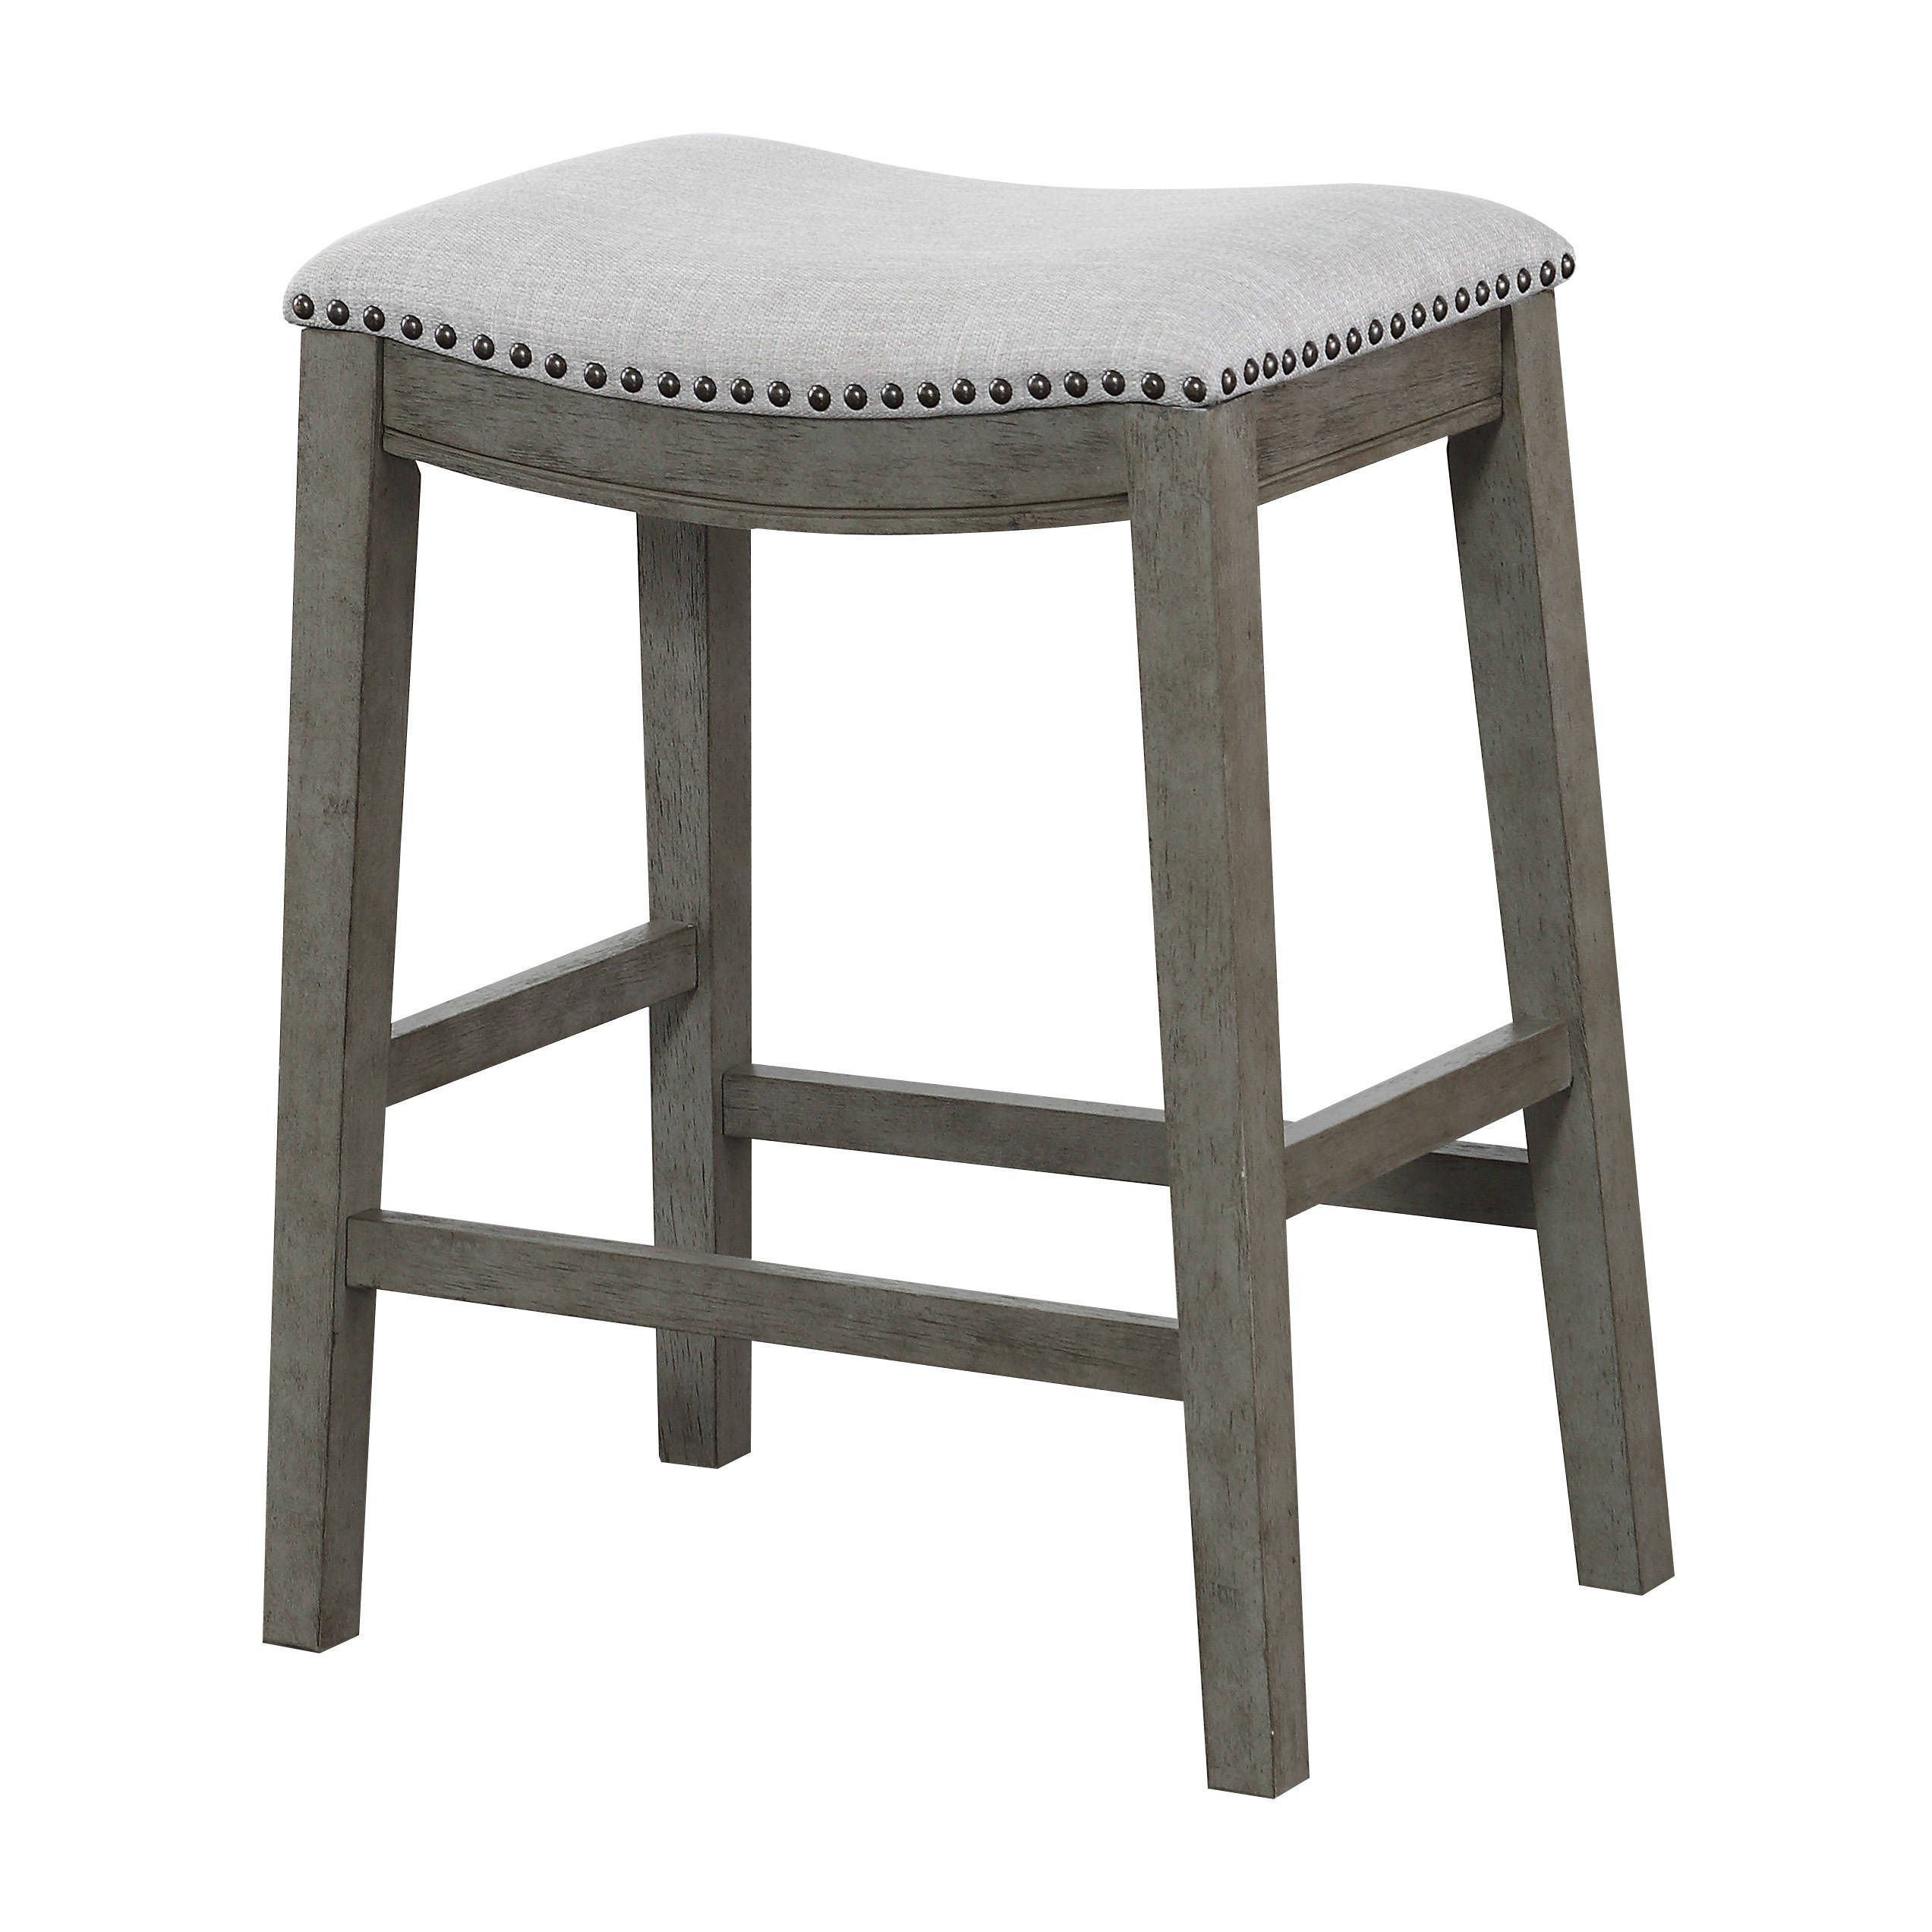 Best Of 24 Saddle Bar Stools